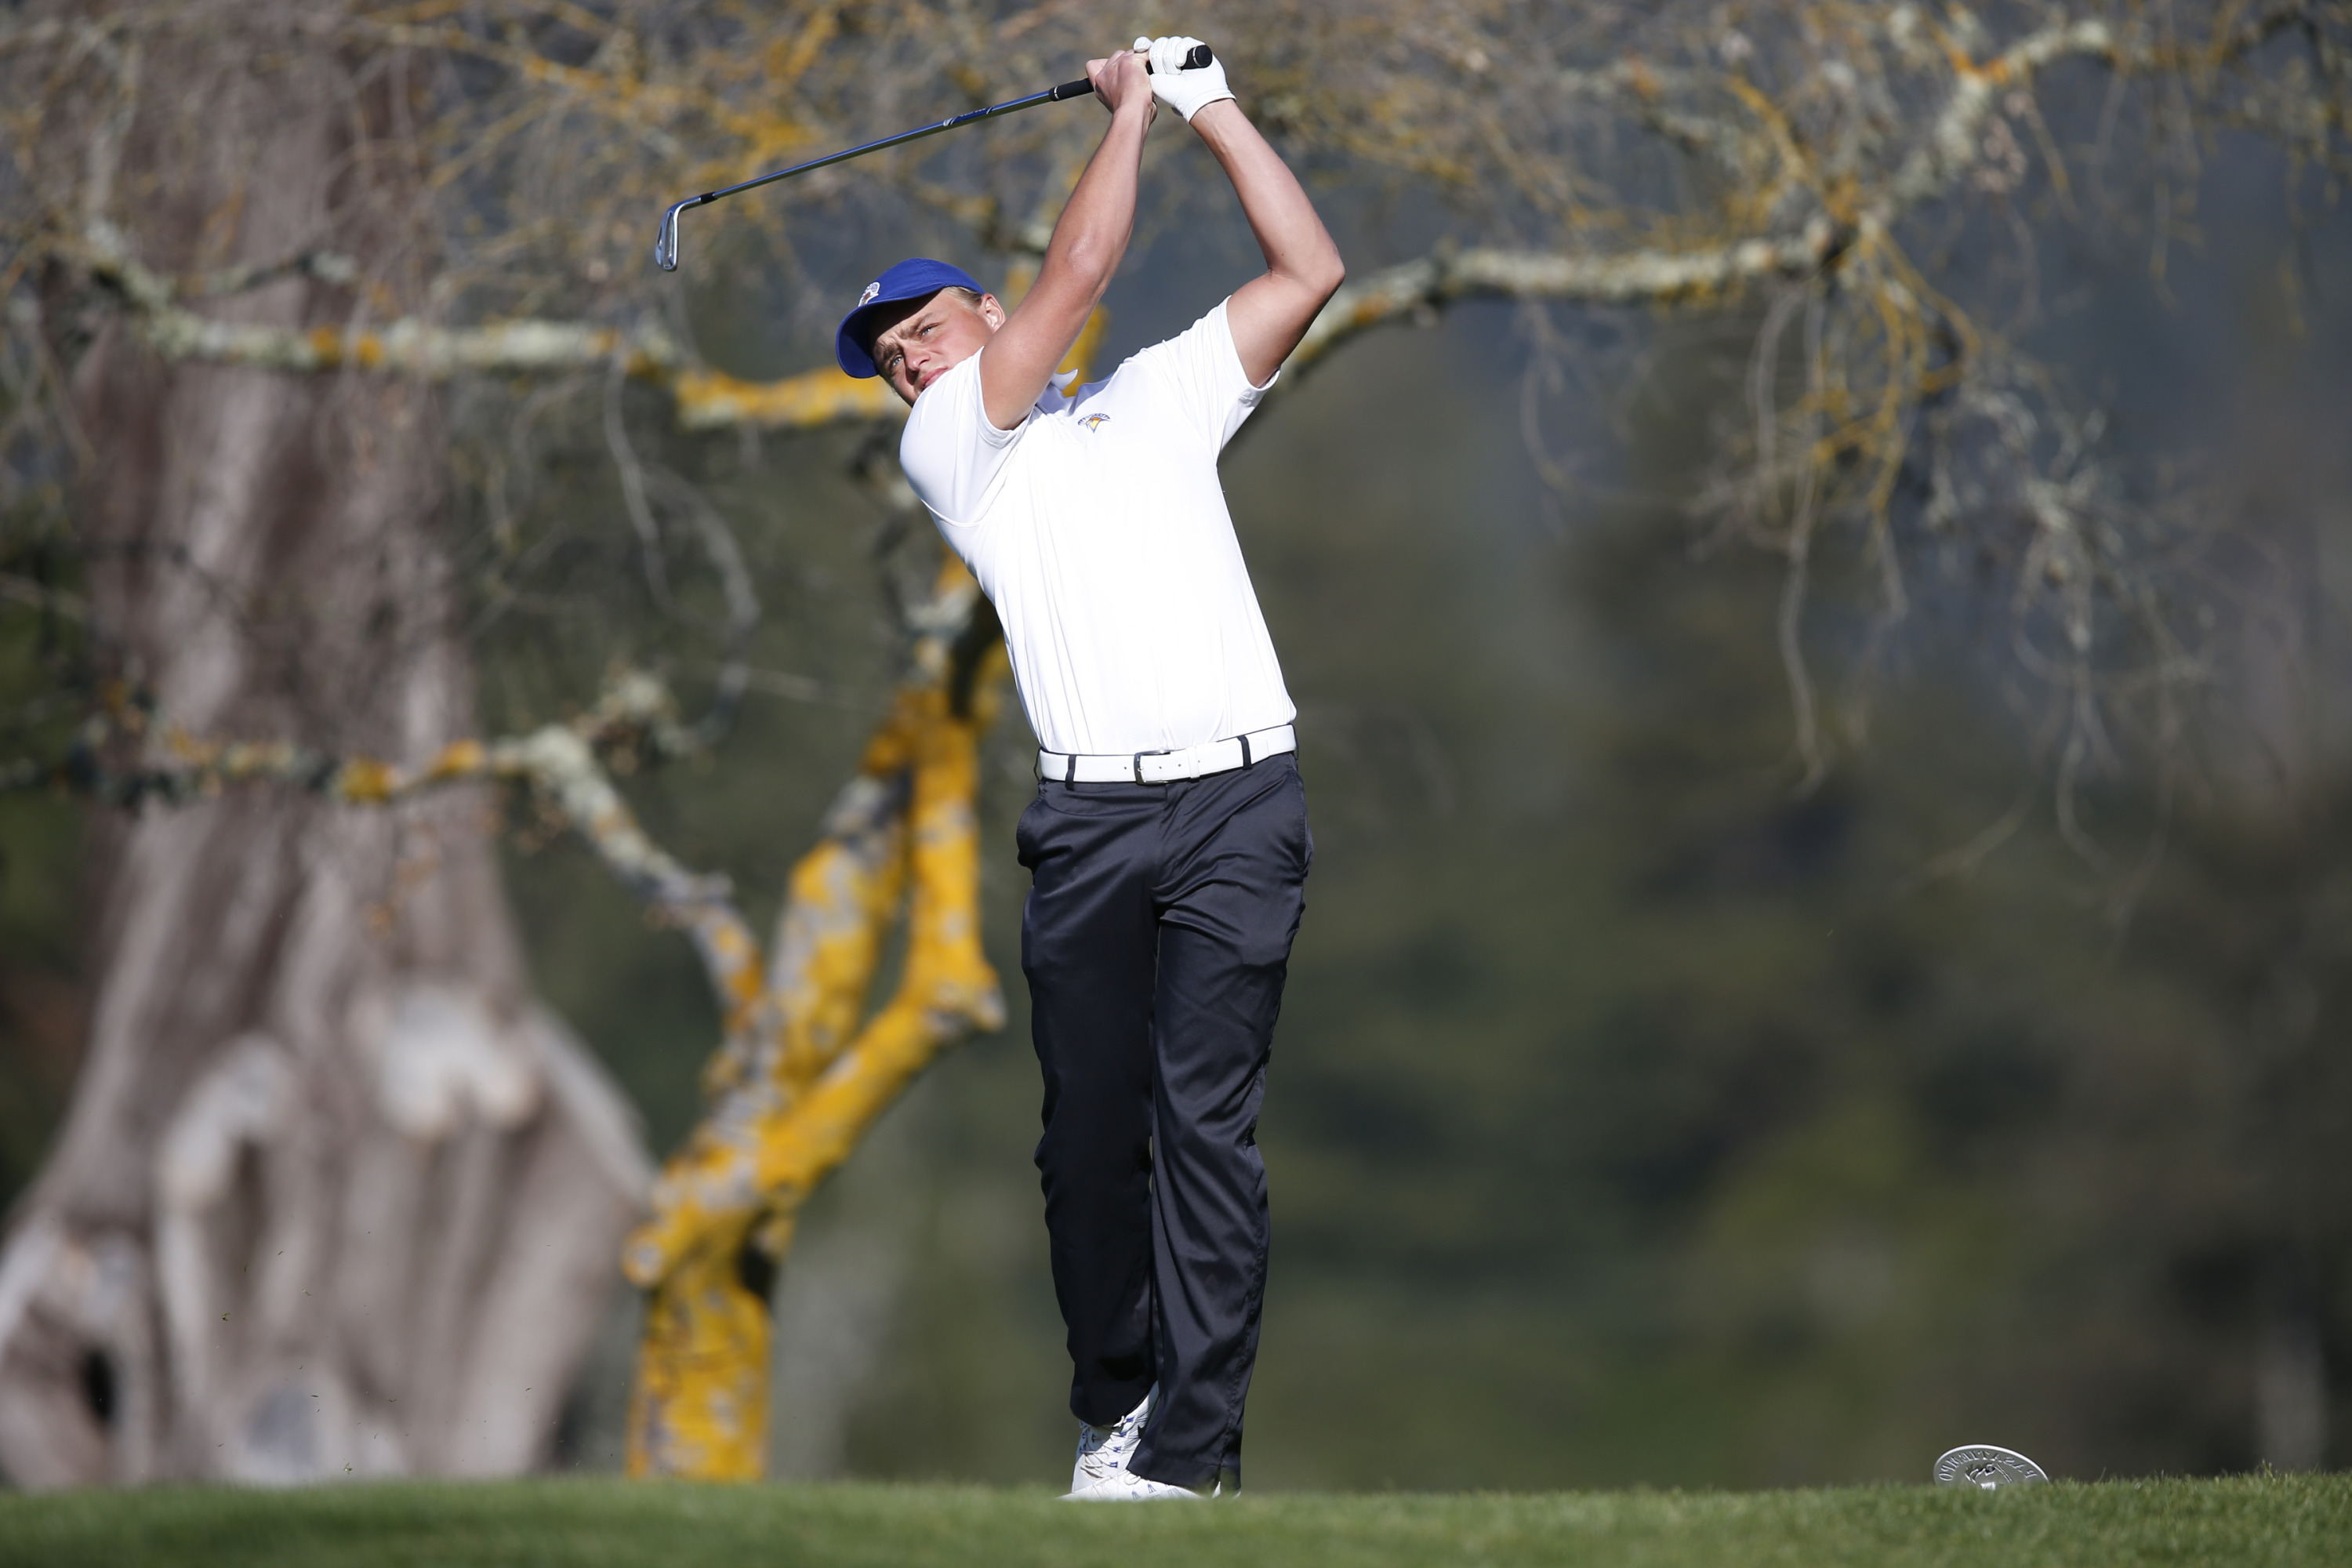 Henrik Sohlberg will be making his season debut on Friday at the Price's Give 'Em Five Invitational.